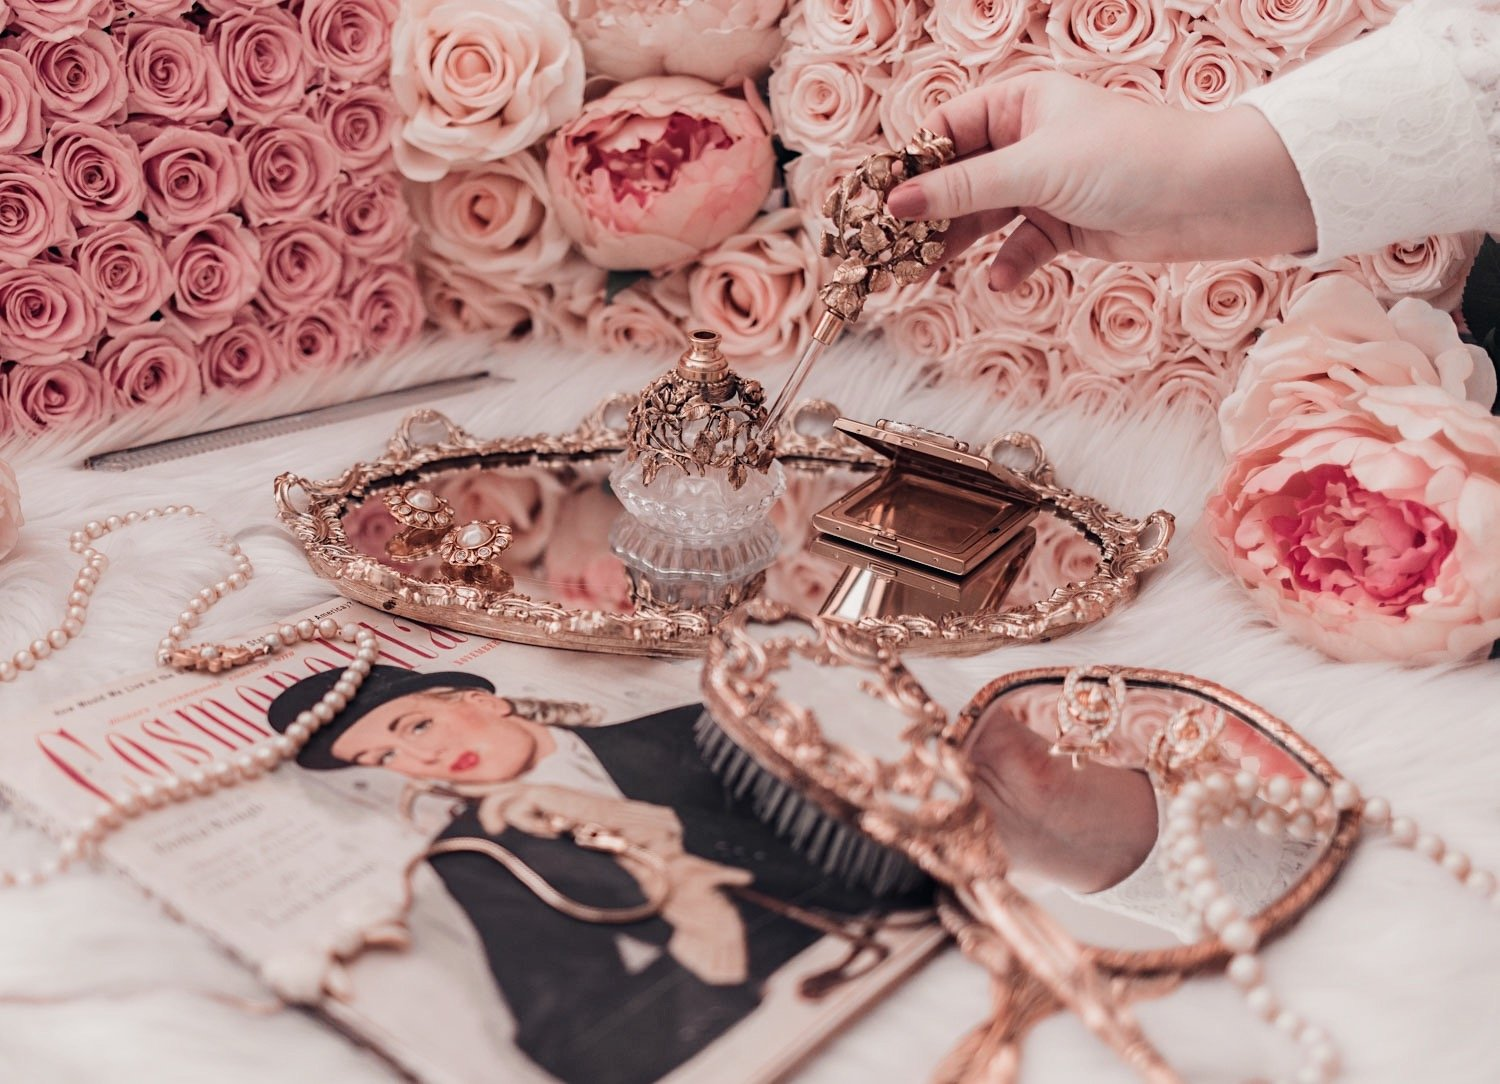 Elizabeth Hugen from Lizzie in Lace shares her Glamorous Vintage Collection